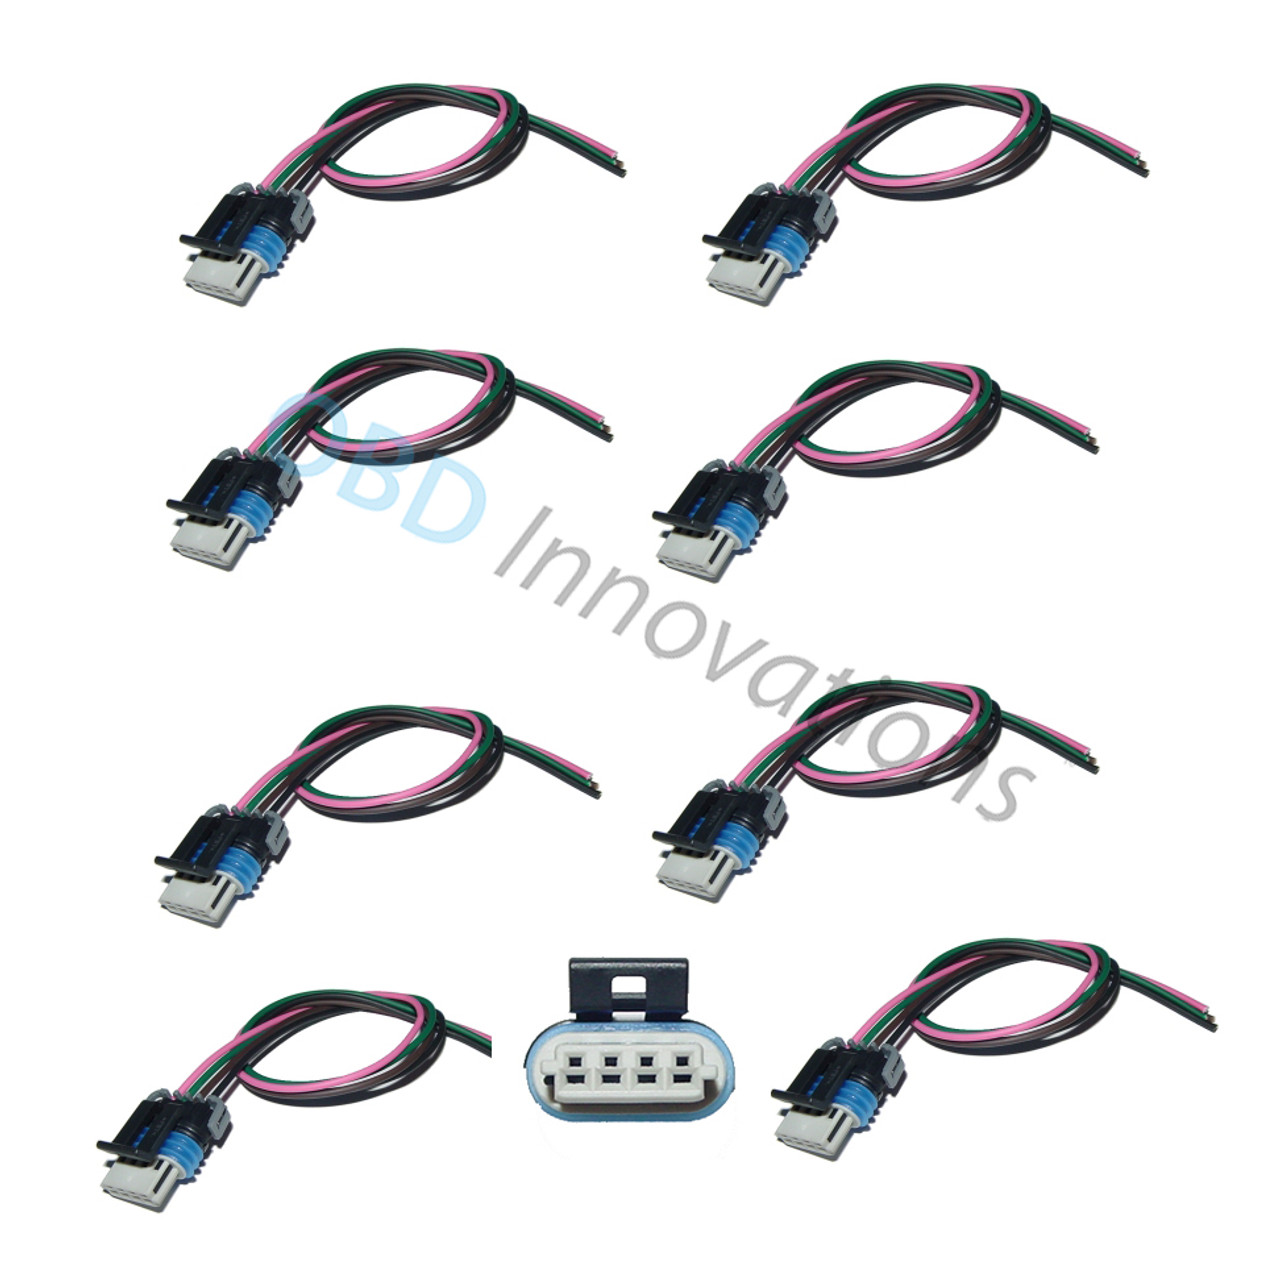 8x ignition coil pack connector pigtail for gm ls2 ls3 ls7 obd innovations [ 972 x 972 Pixel ]